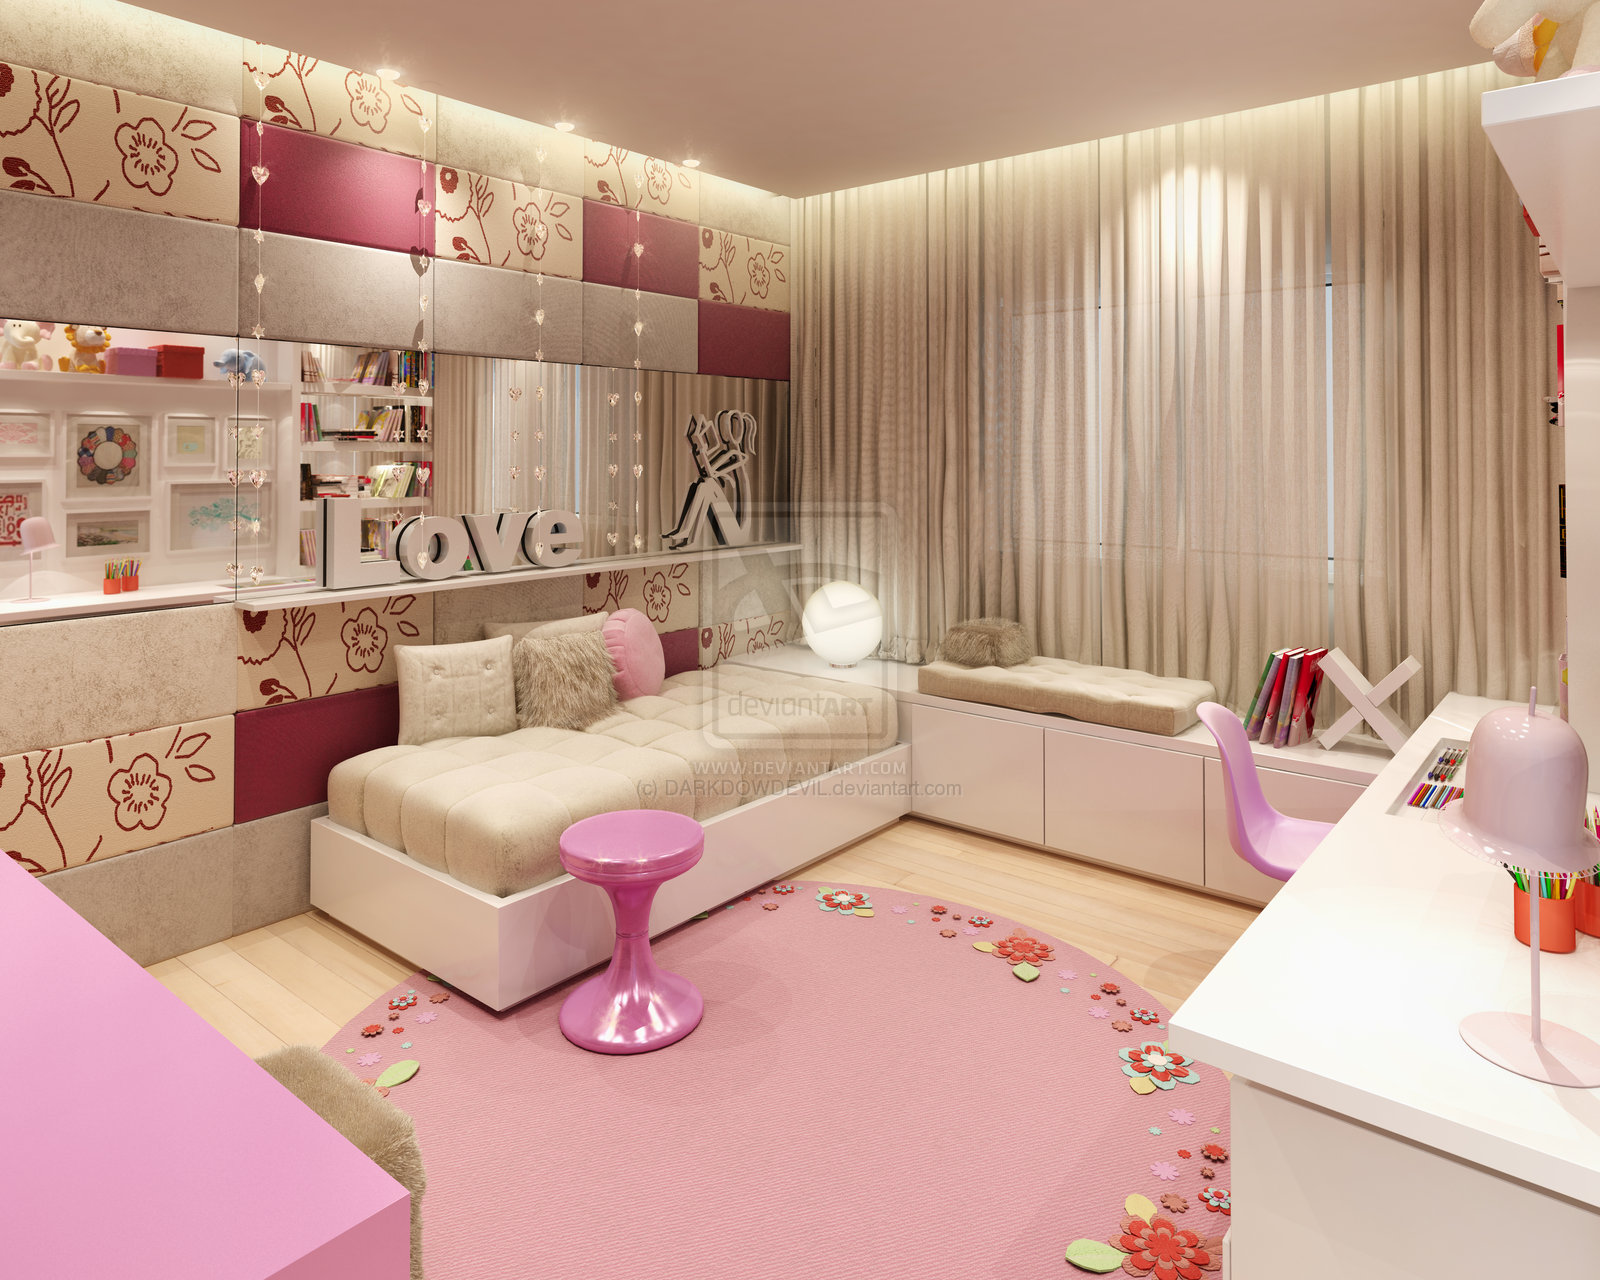 Teenage room designs - Girls room ideas ...